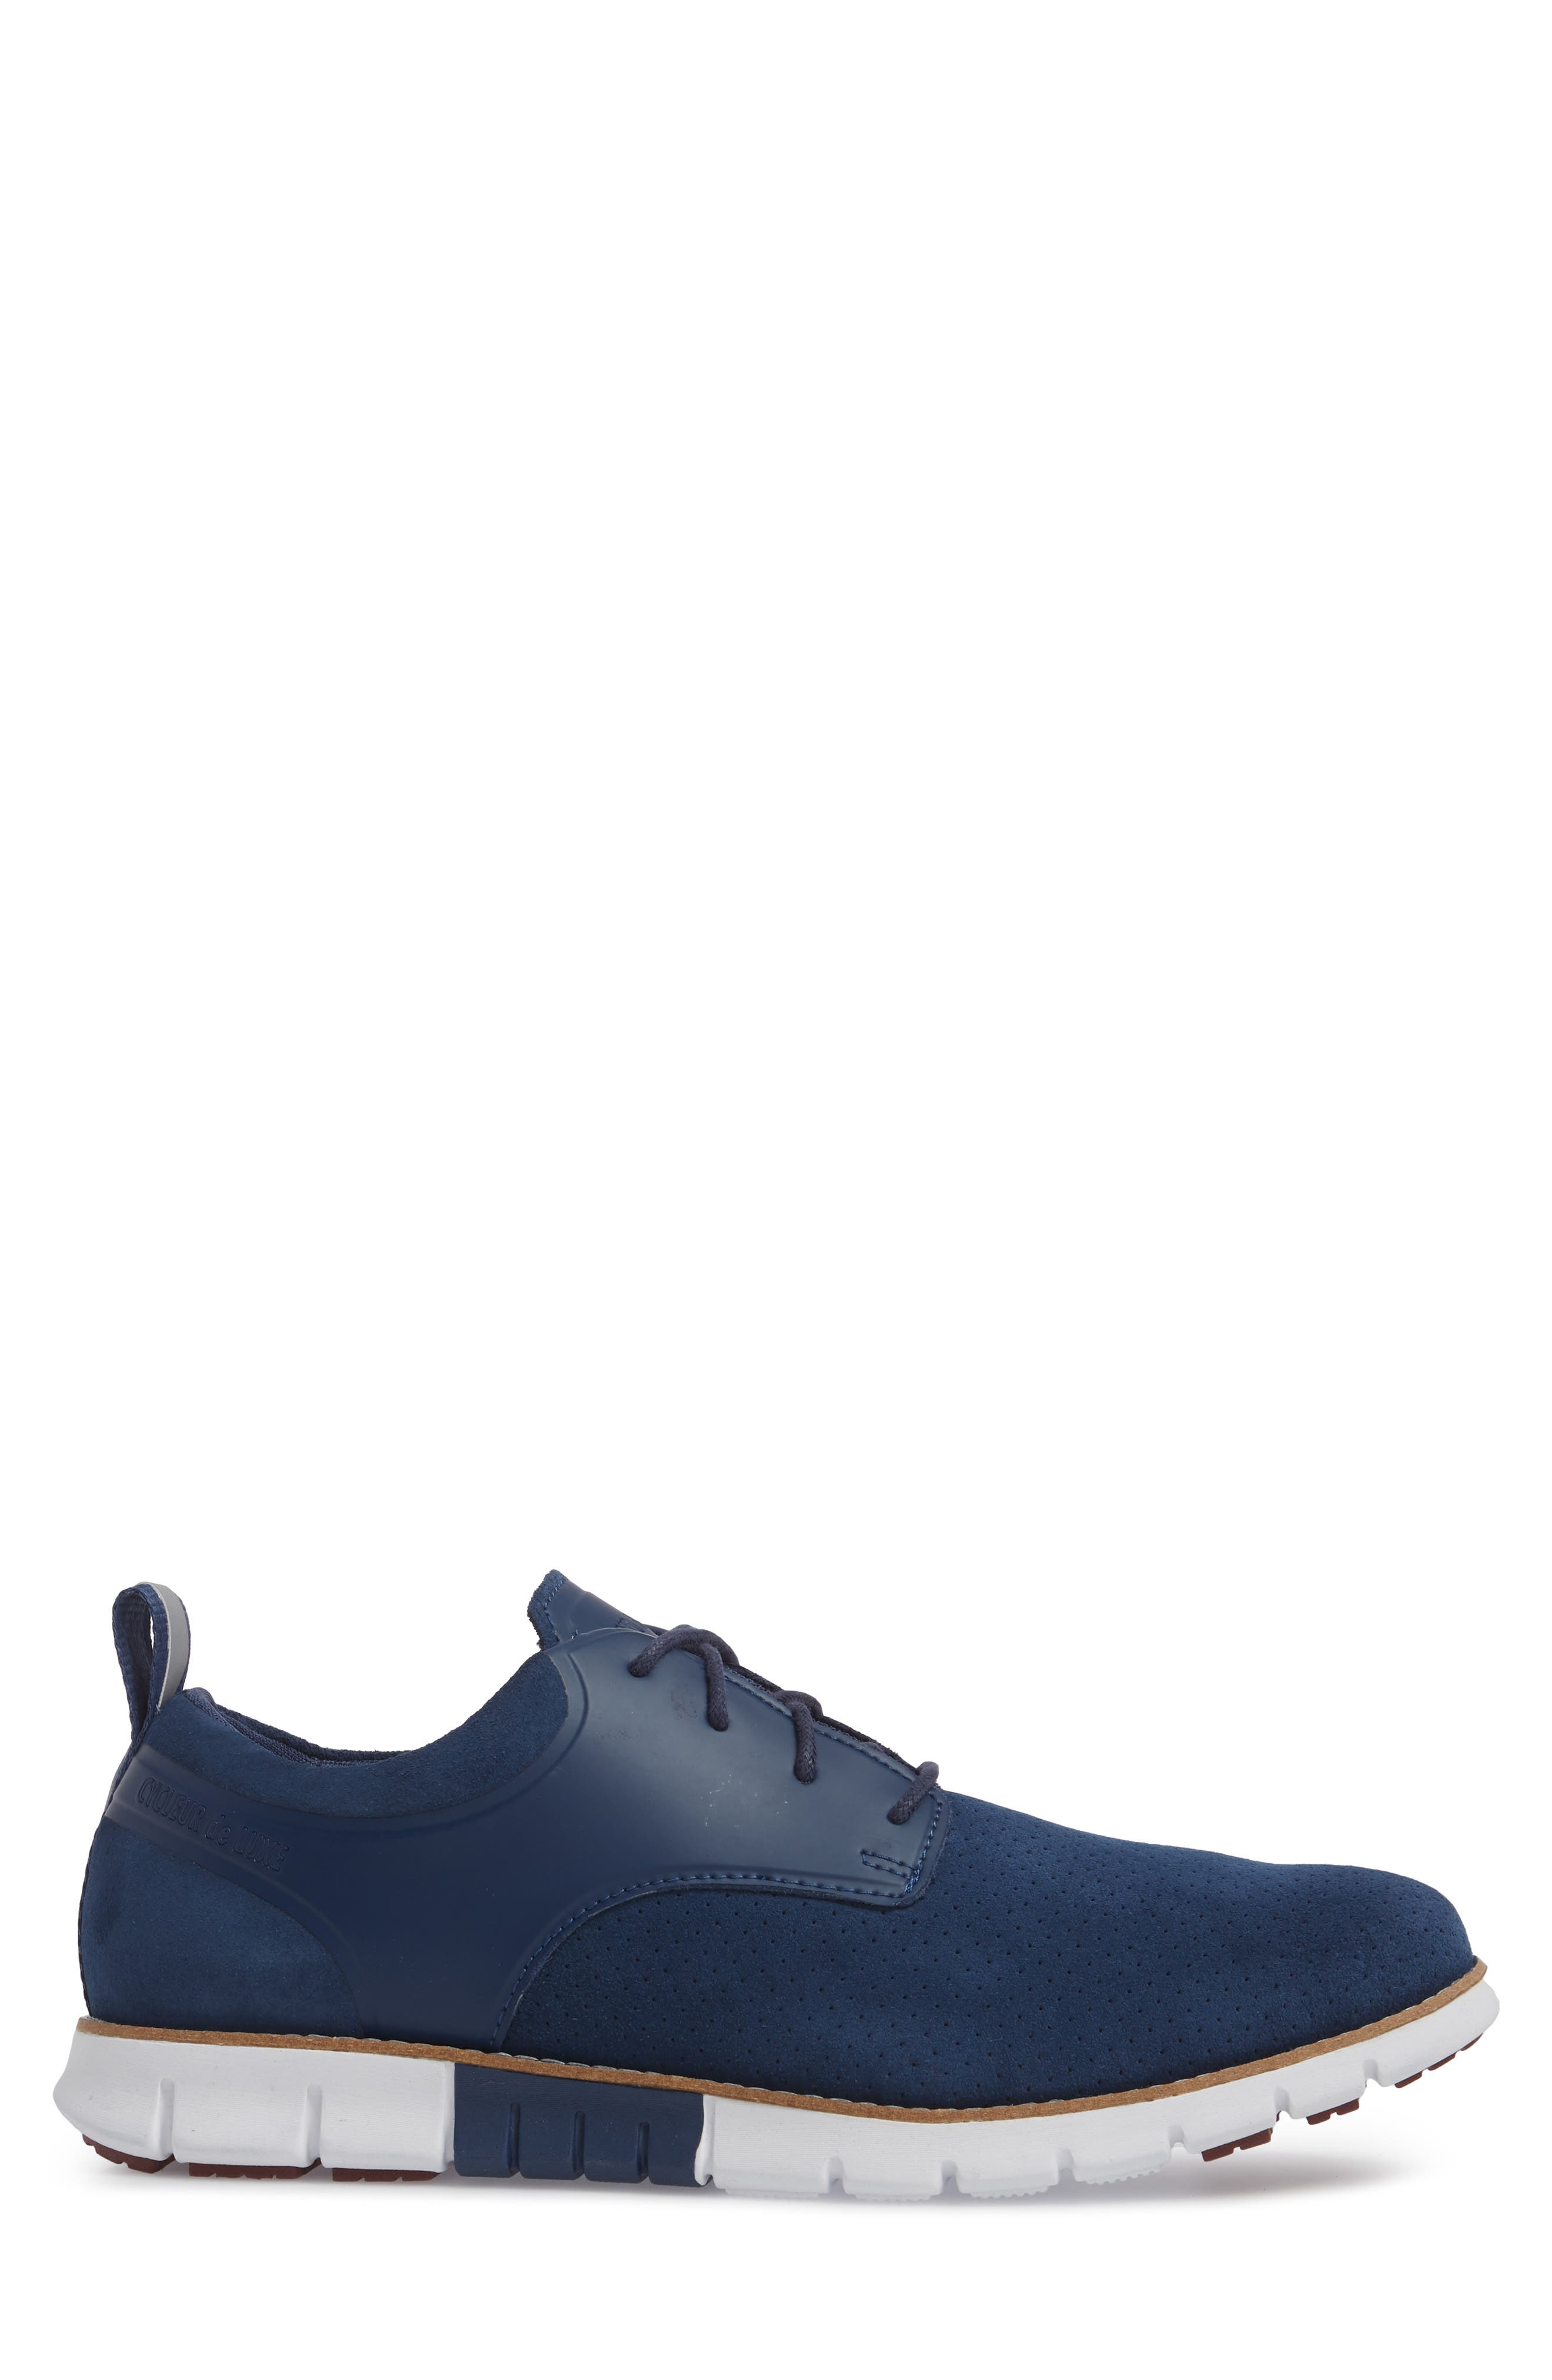 Ridley Perforated Low Top Sneaker,                             Alternate thumbnail 3, color,                             NAVY LEATHER